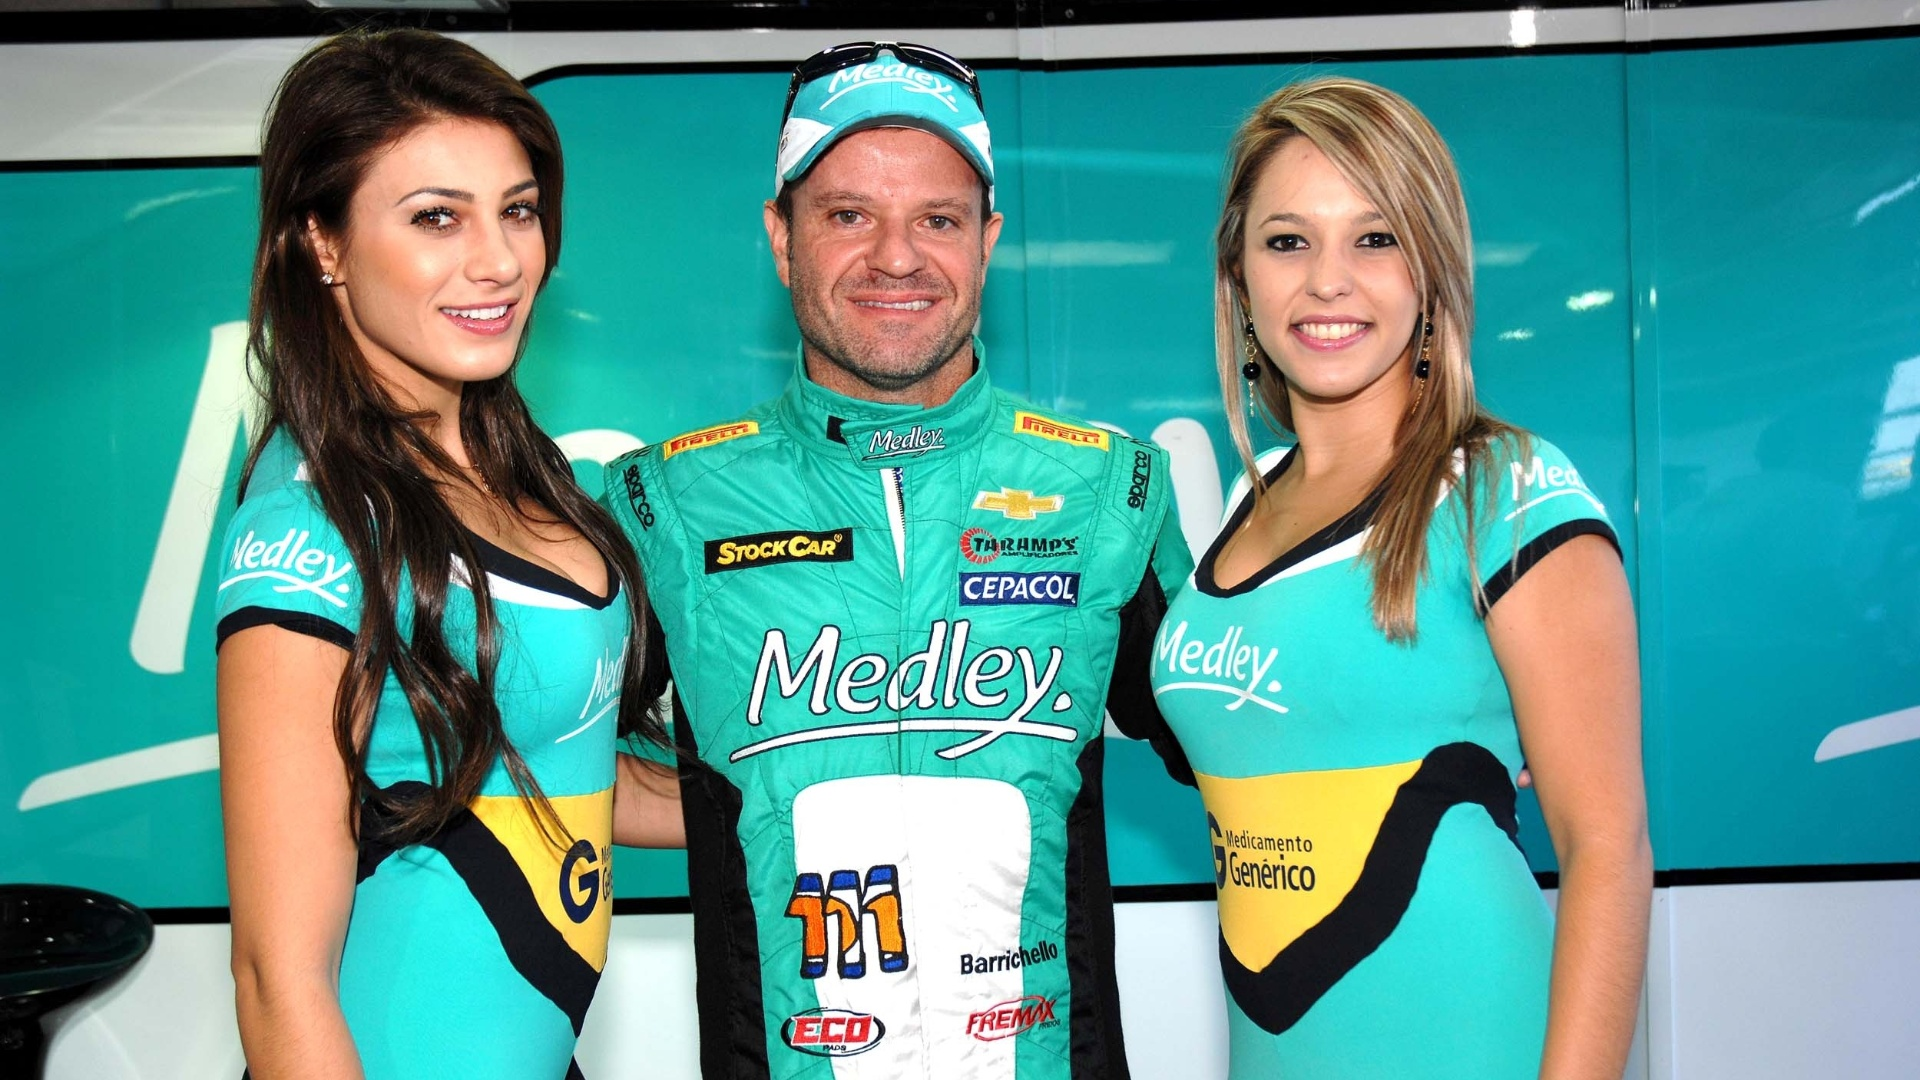 28.abr.2013 - Rubens Barrichello, 20 colocado na prova da Stock Car em tarum, posa com grid girls